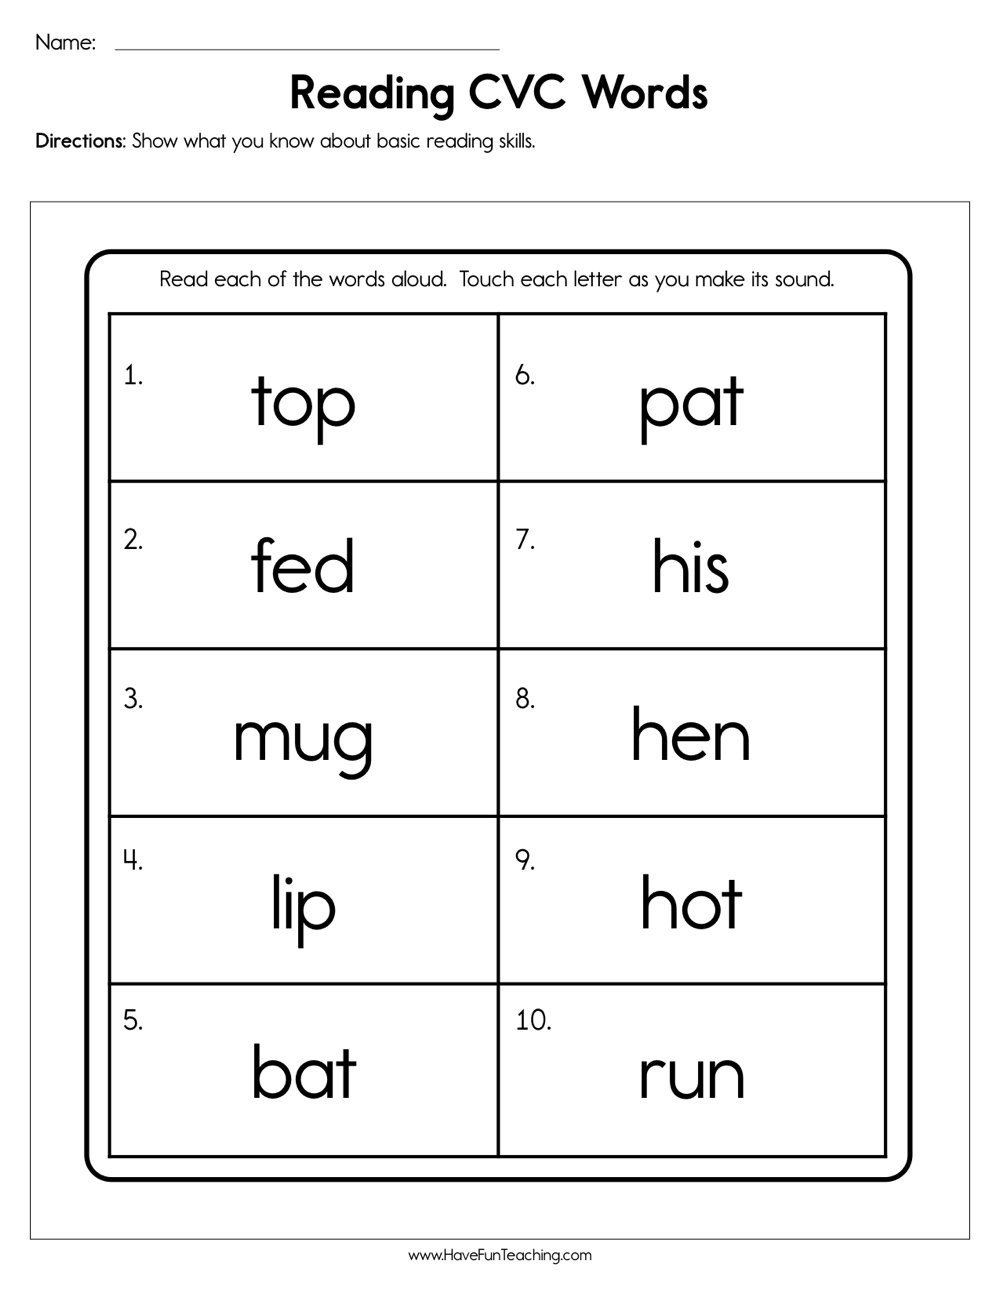 Cvc Words Worksheet Kindergarten Reading Cvc Words Worksheet